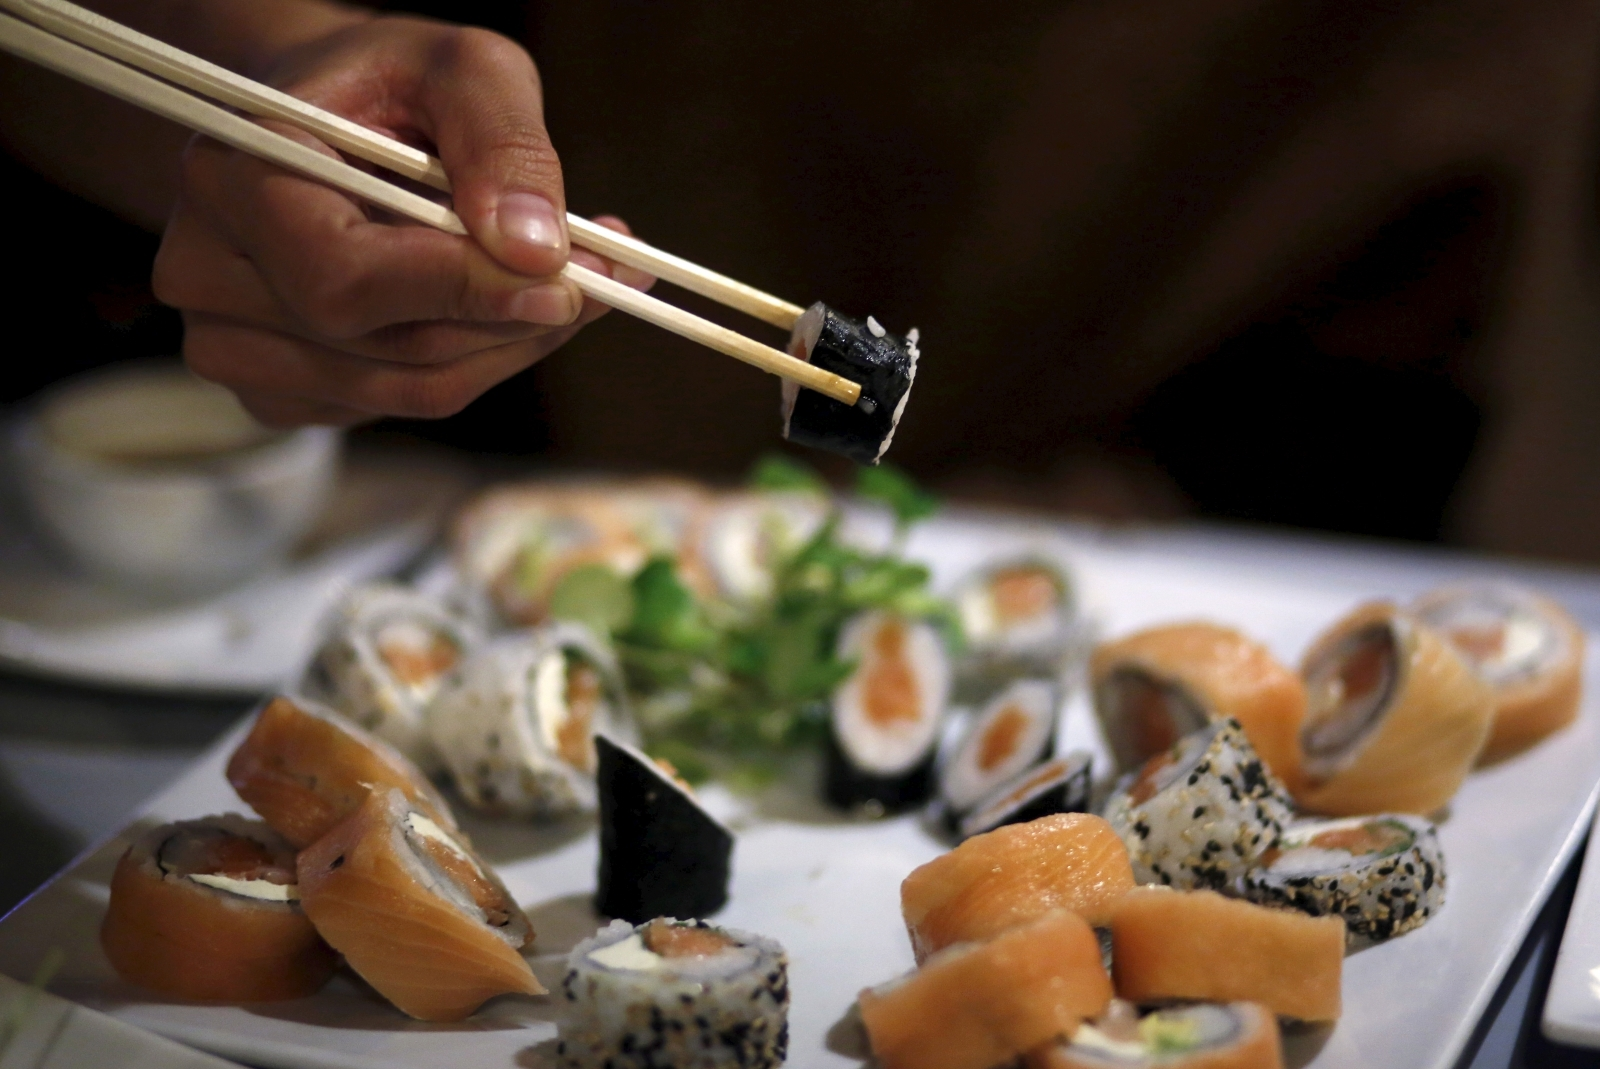 Sushi lover finds 5ft tapeworm dangling from his rectum and yanks it out himself